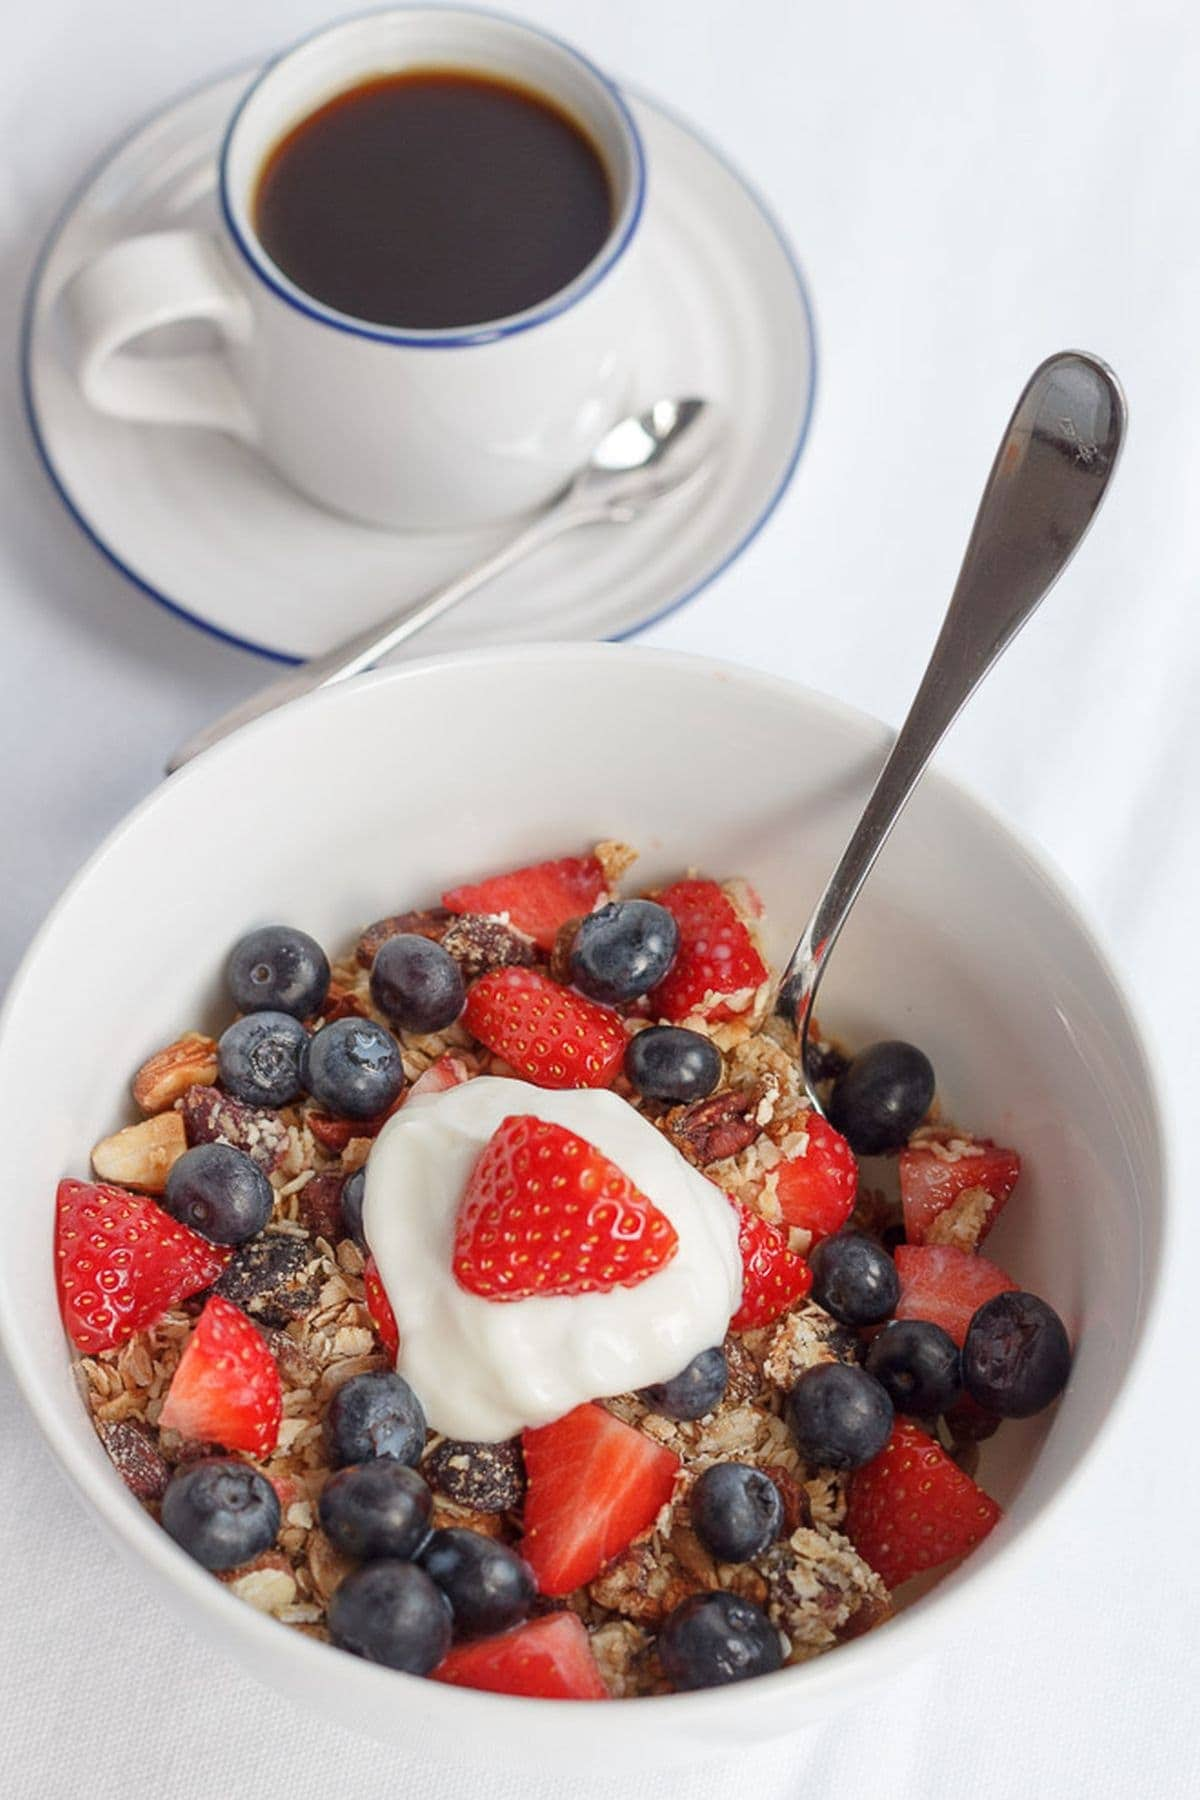 A bowl of homemade granola topped with blueberries, chopped strawberries and a dollup of yogurt. A cup of coffee to the side.